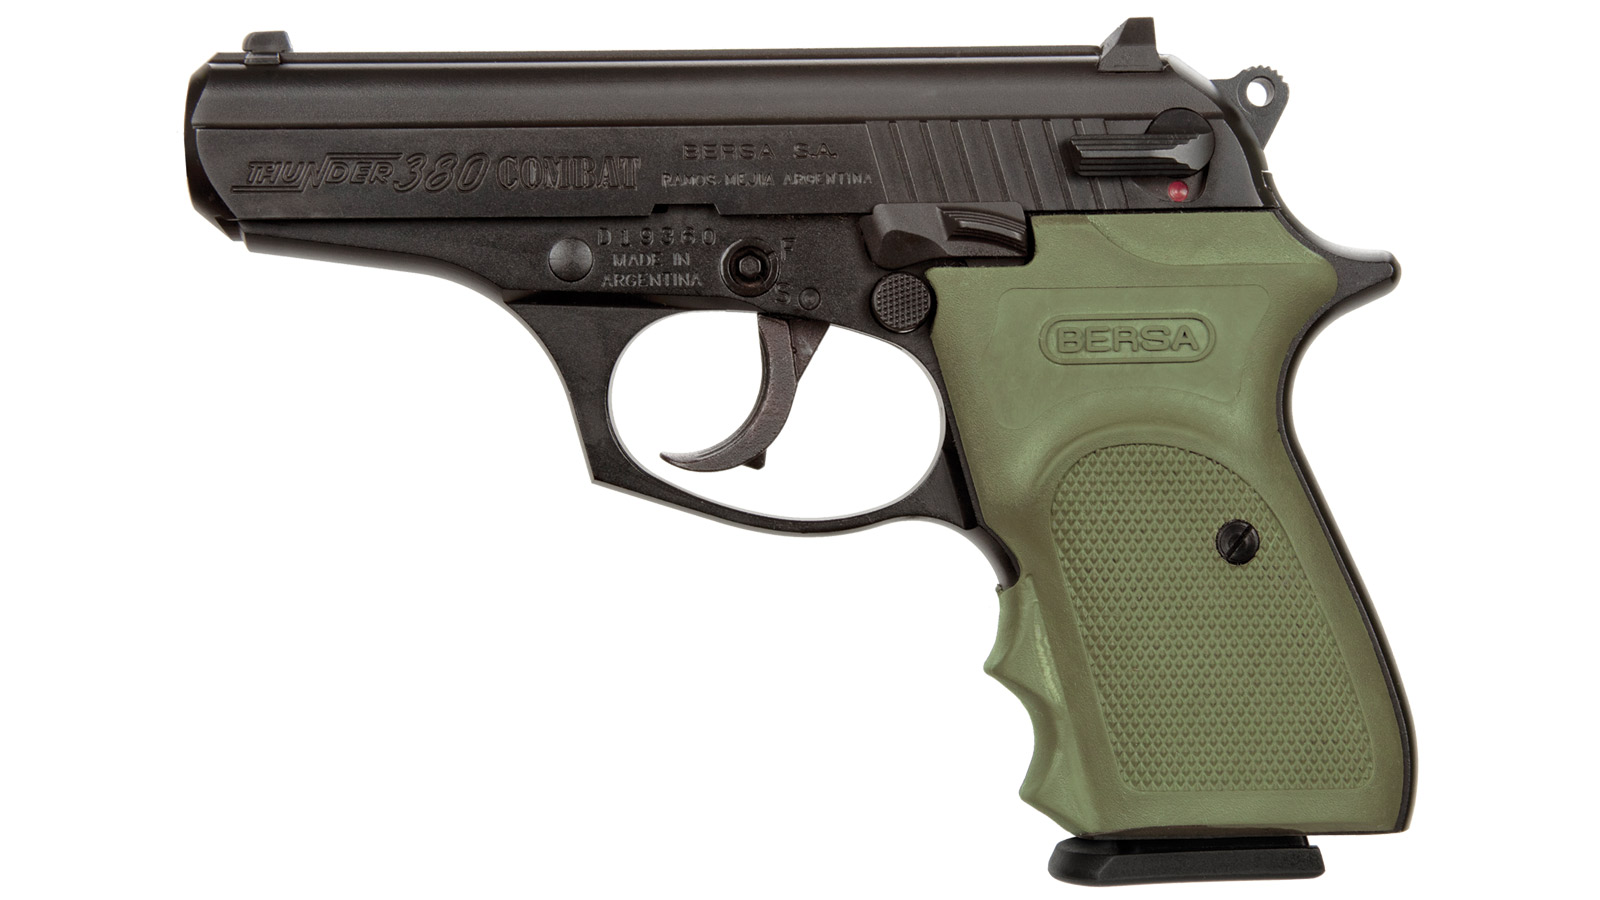 Bersa T380MC Thunder Combat Single|Double 380 Automatic Colt Pistol (ACP) 3.5 8+1 OD Green Rubber Grip Black in.